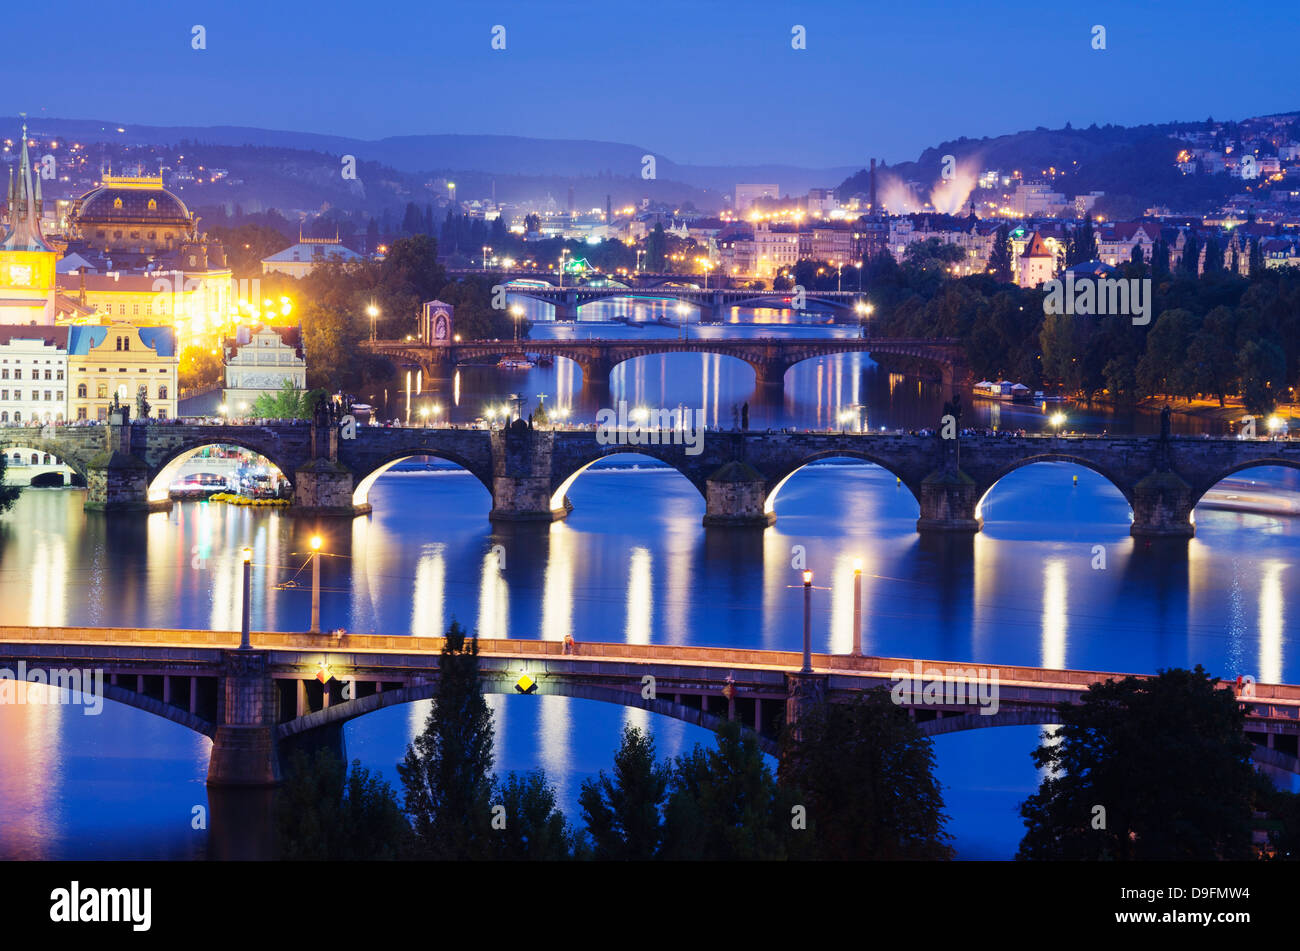 Bridges on the Vltava River, UNESCO World Heritage Site, Prague, Czech Republic - Stock Image